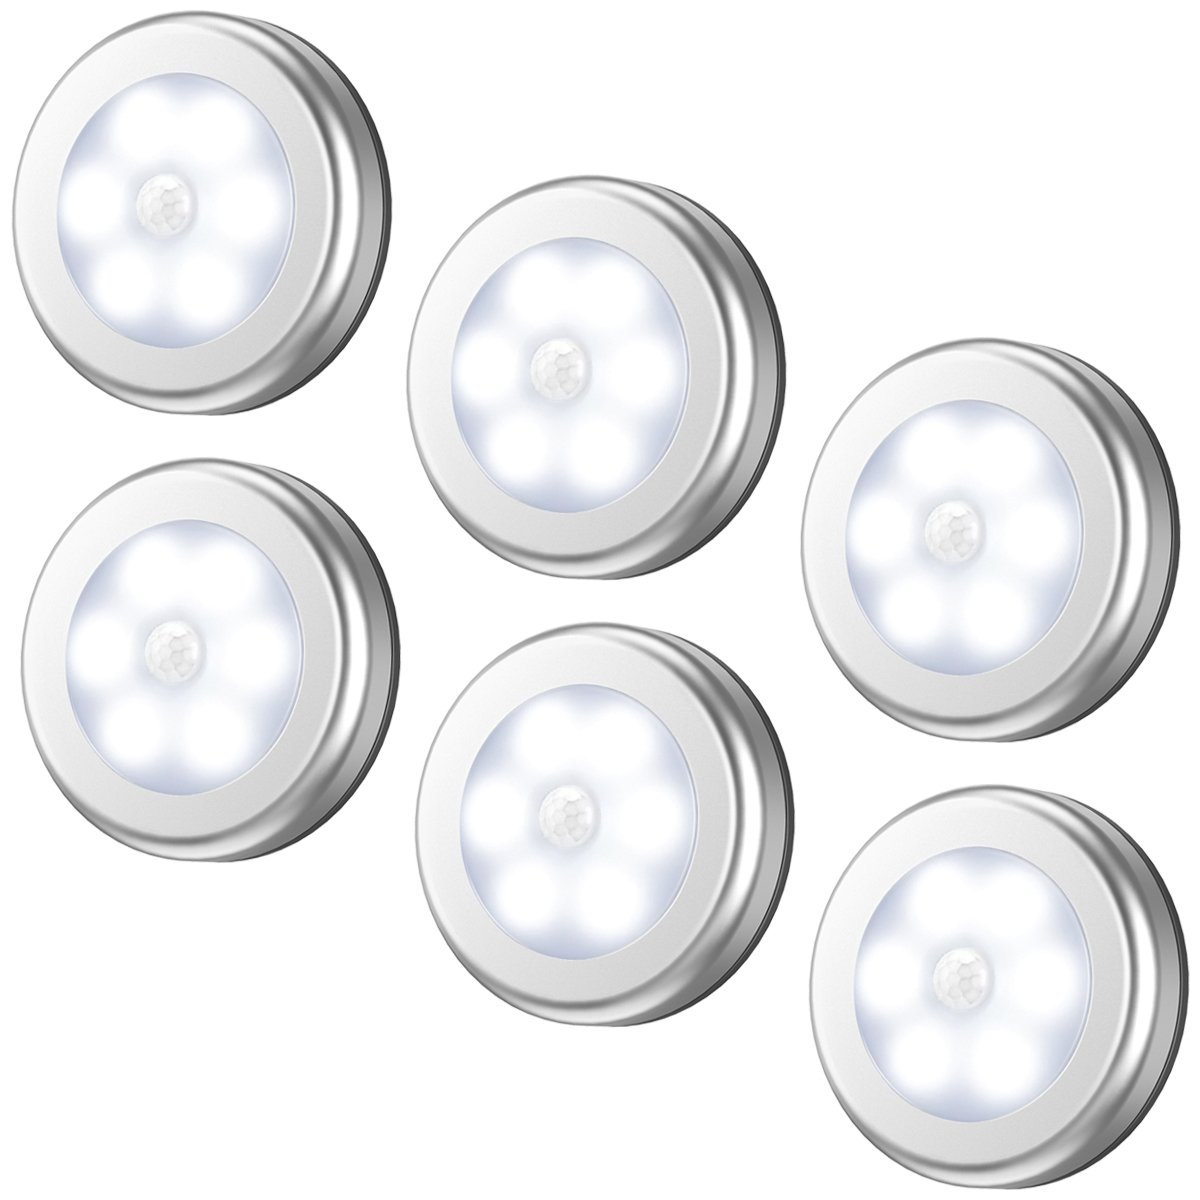 AMIR Motion Sensor Light, Cordless Battery-Powered LED Night Light, Stick-anywhere Closet Lights Stair Lights, Puck Lights, Safe Lights for Hallway, Bathroom, Bedroom, Kitchen, etc.(White - Pack of 6) by AMIR